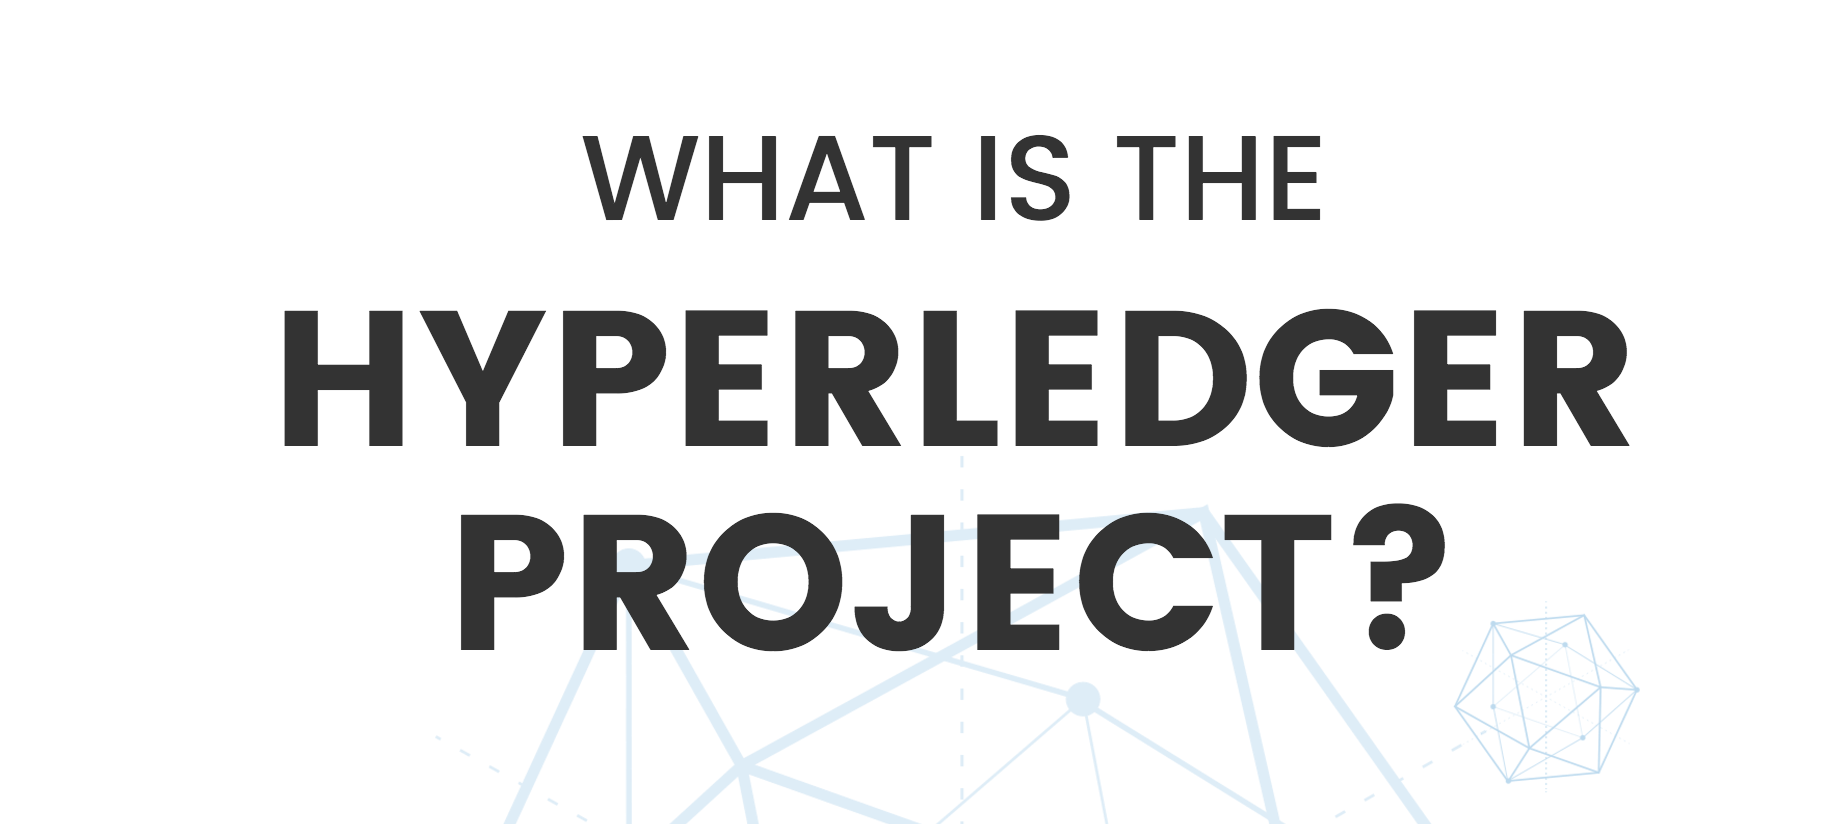 IBM 致力創建的 Hyperledger 是什麼?